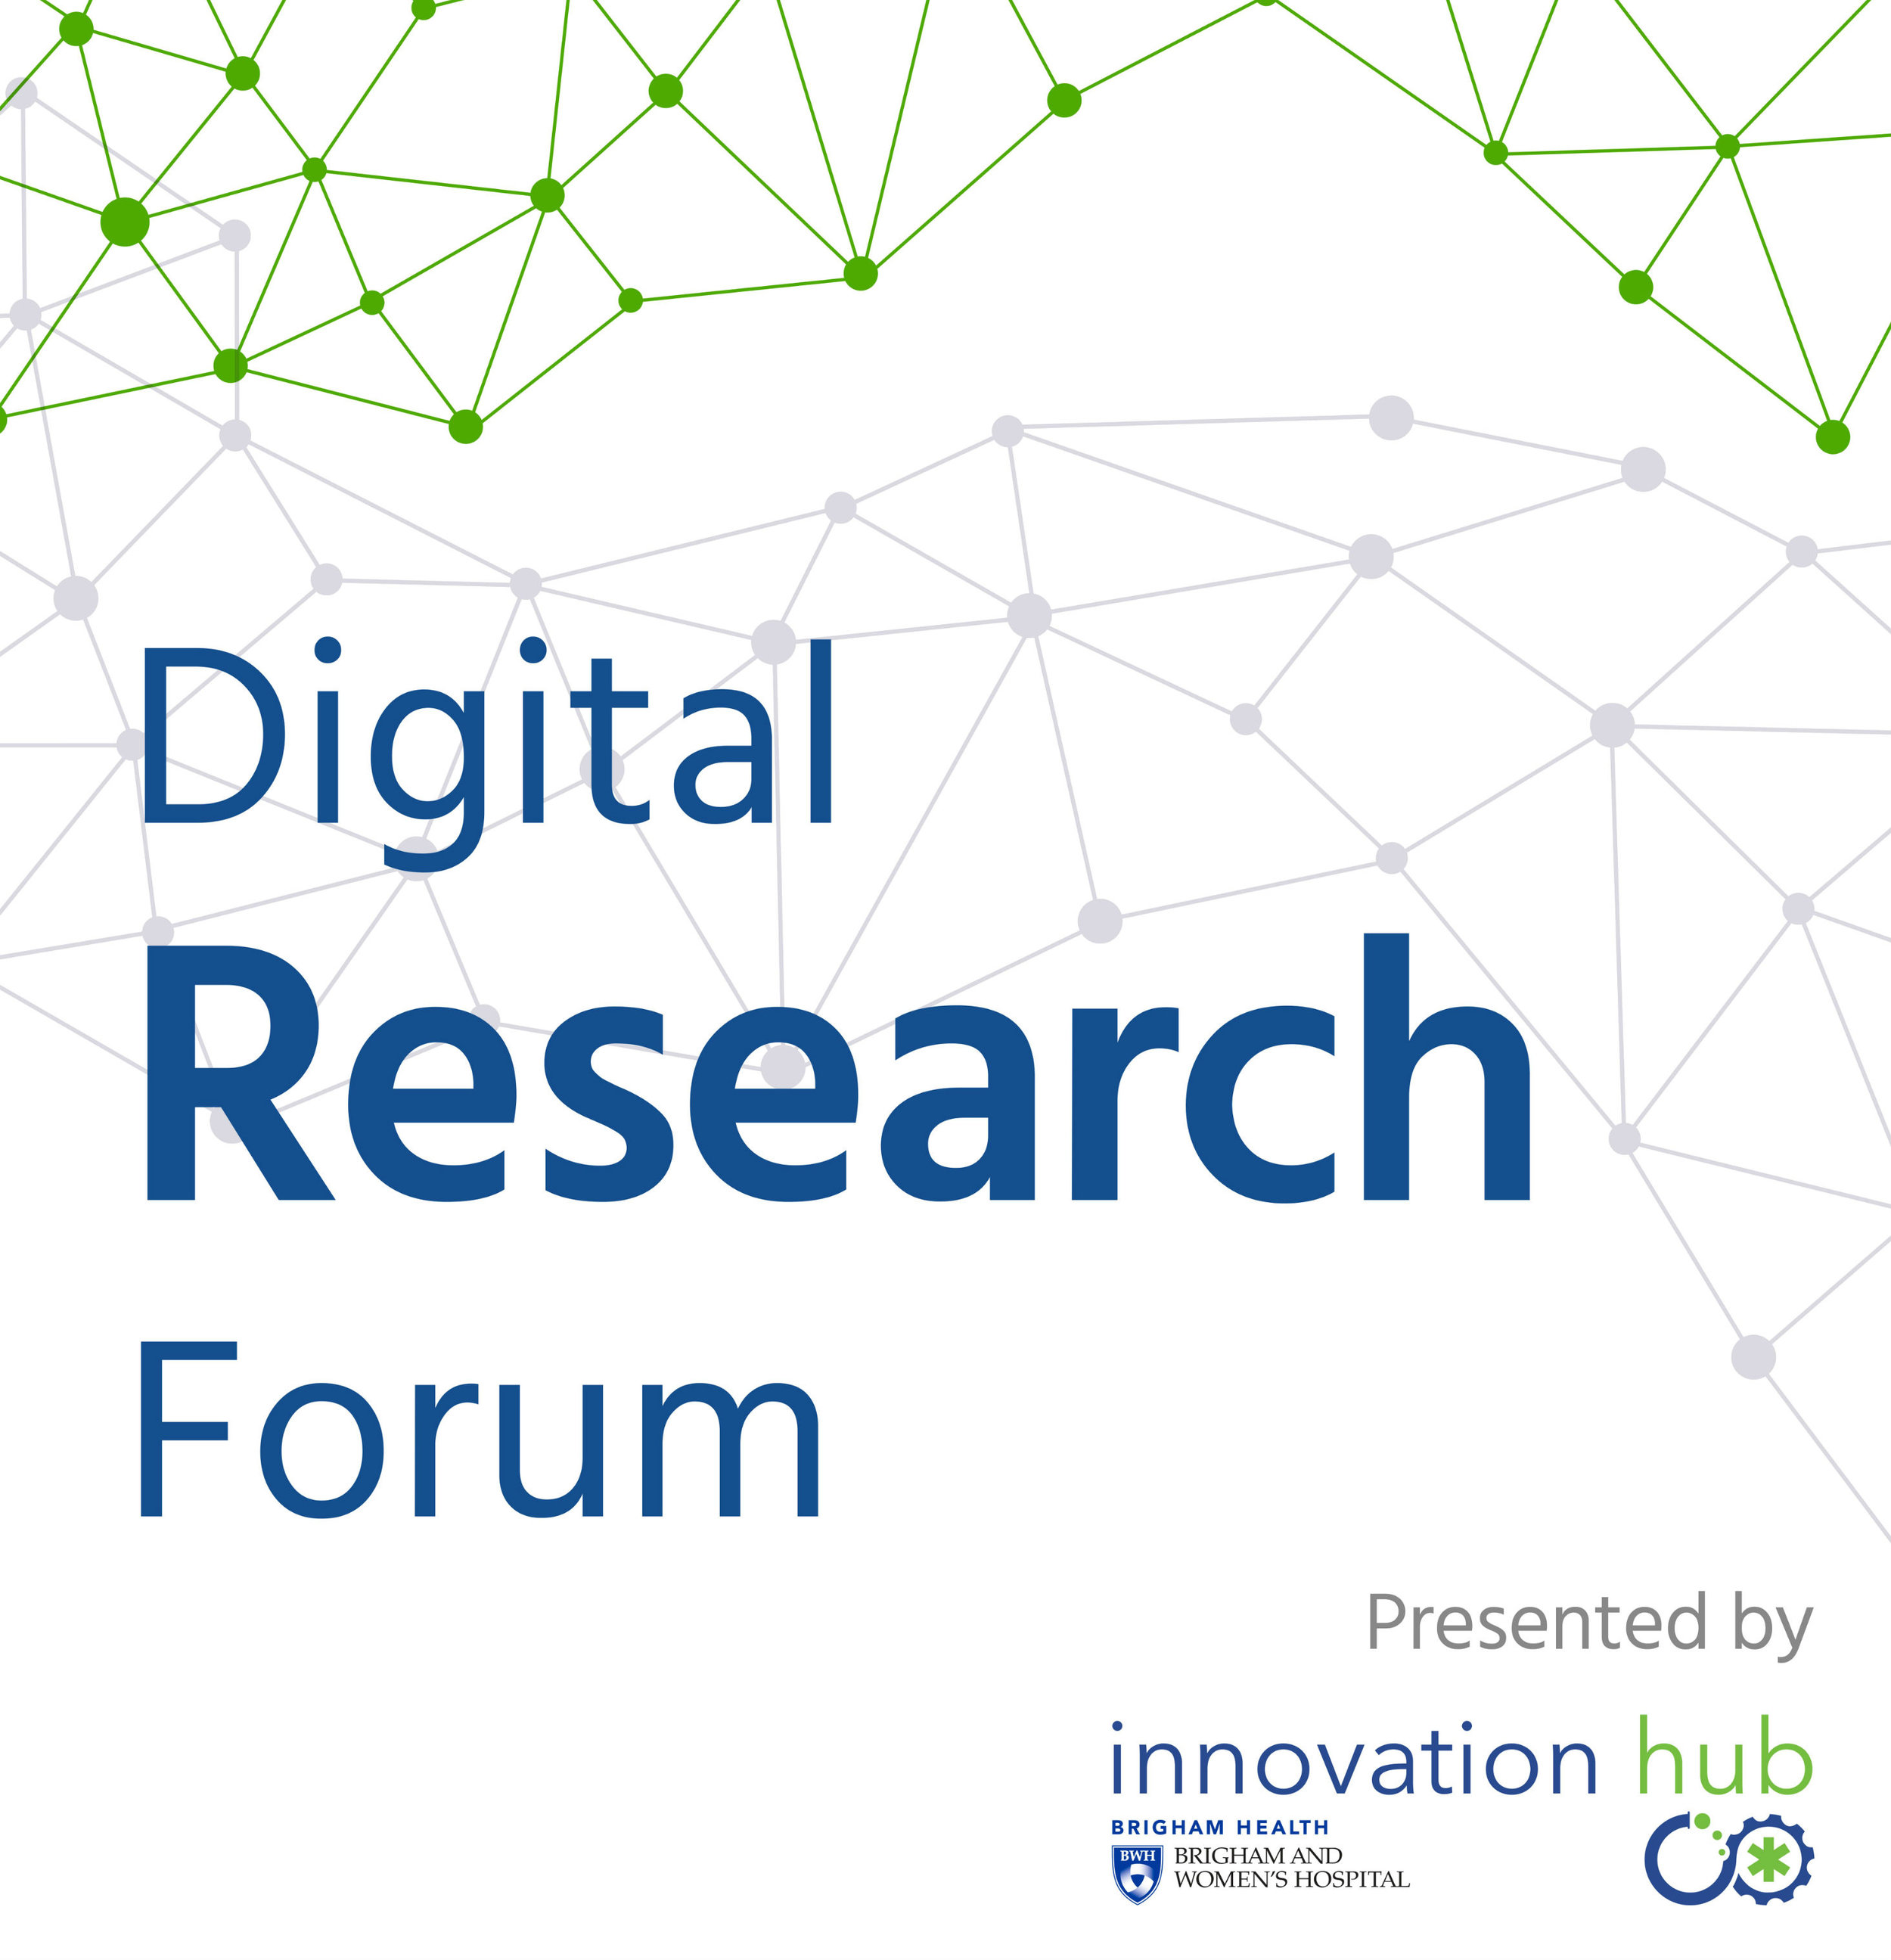 """Calum A. MacRae, MD, Ph.D and Jay Jagadeesan, Ph.D: Digital Research Forum   As part of the Digital Research Forum, iHub welcomed Calum A. MacRae, MD, PhD to discuss """"Getting digital into the clinic: what will it take?"""" while Jay Jagadeesan, PhD presented on """"Virtual, Mixed and Augmented Reality for Diagnostic and Surgical Applications""""."""